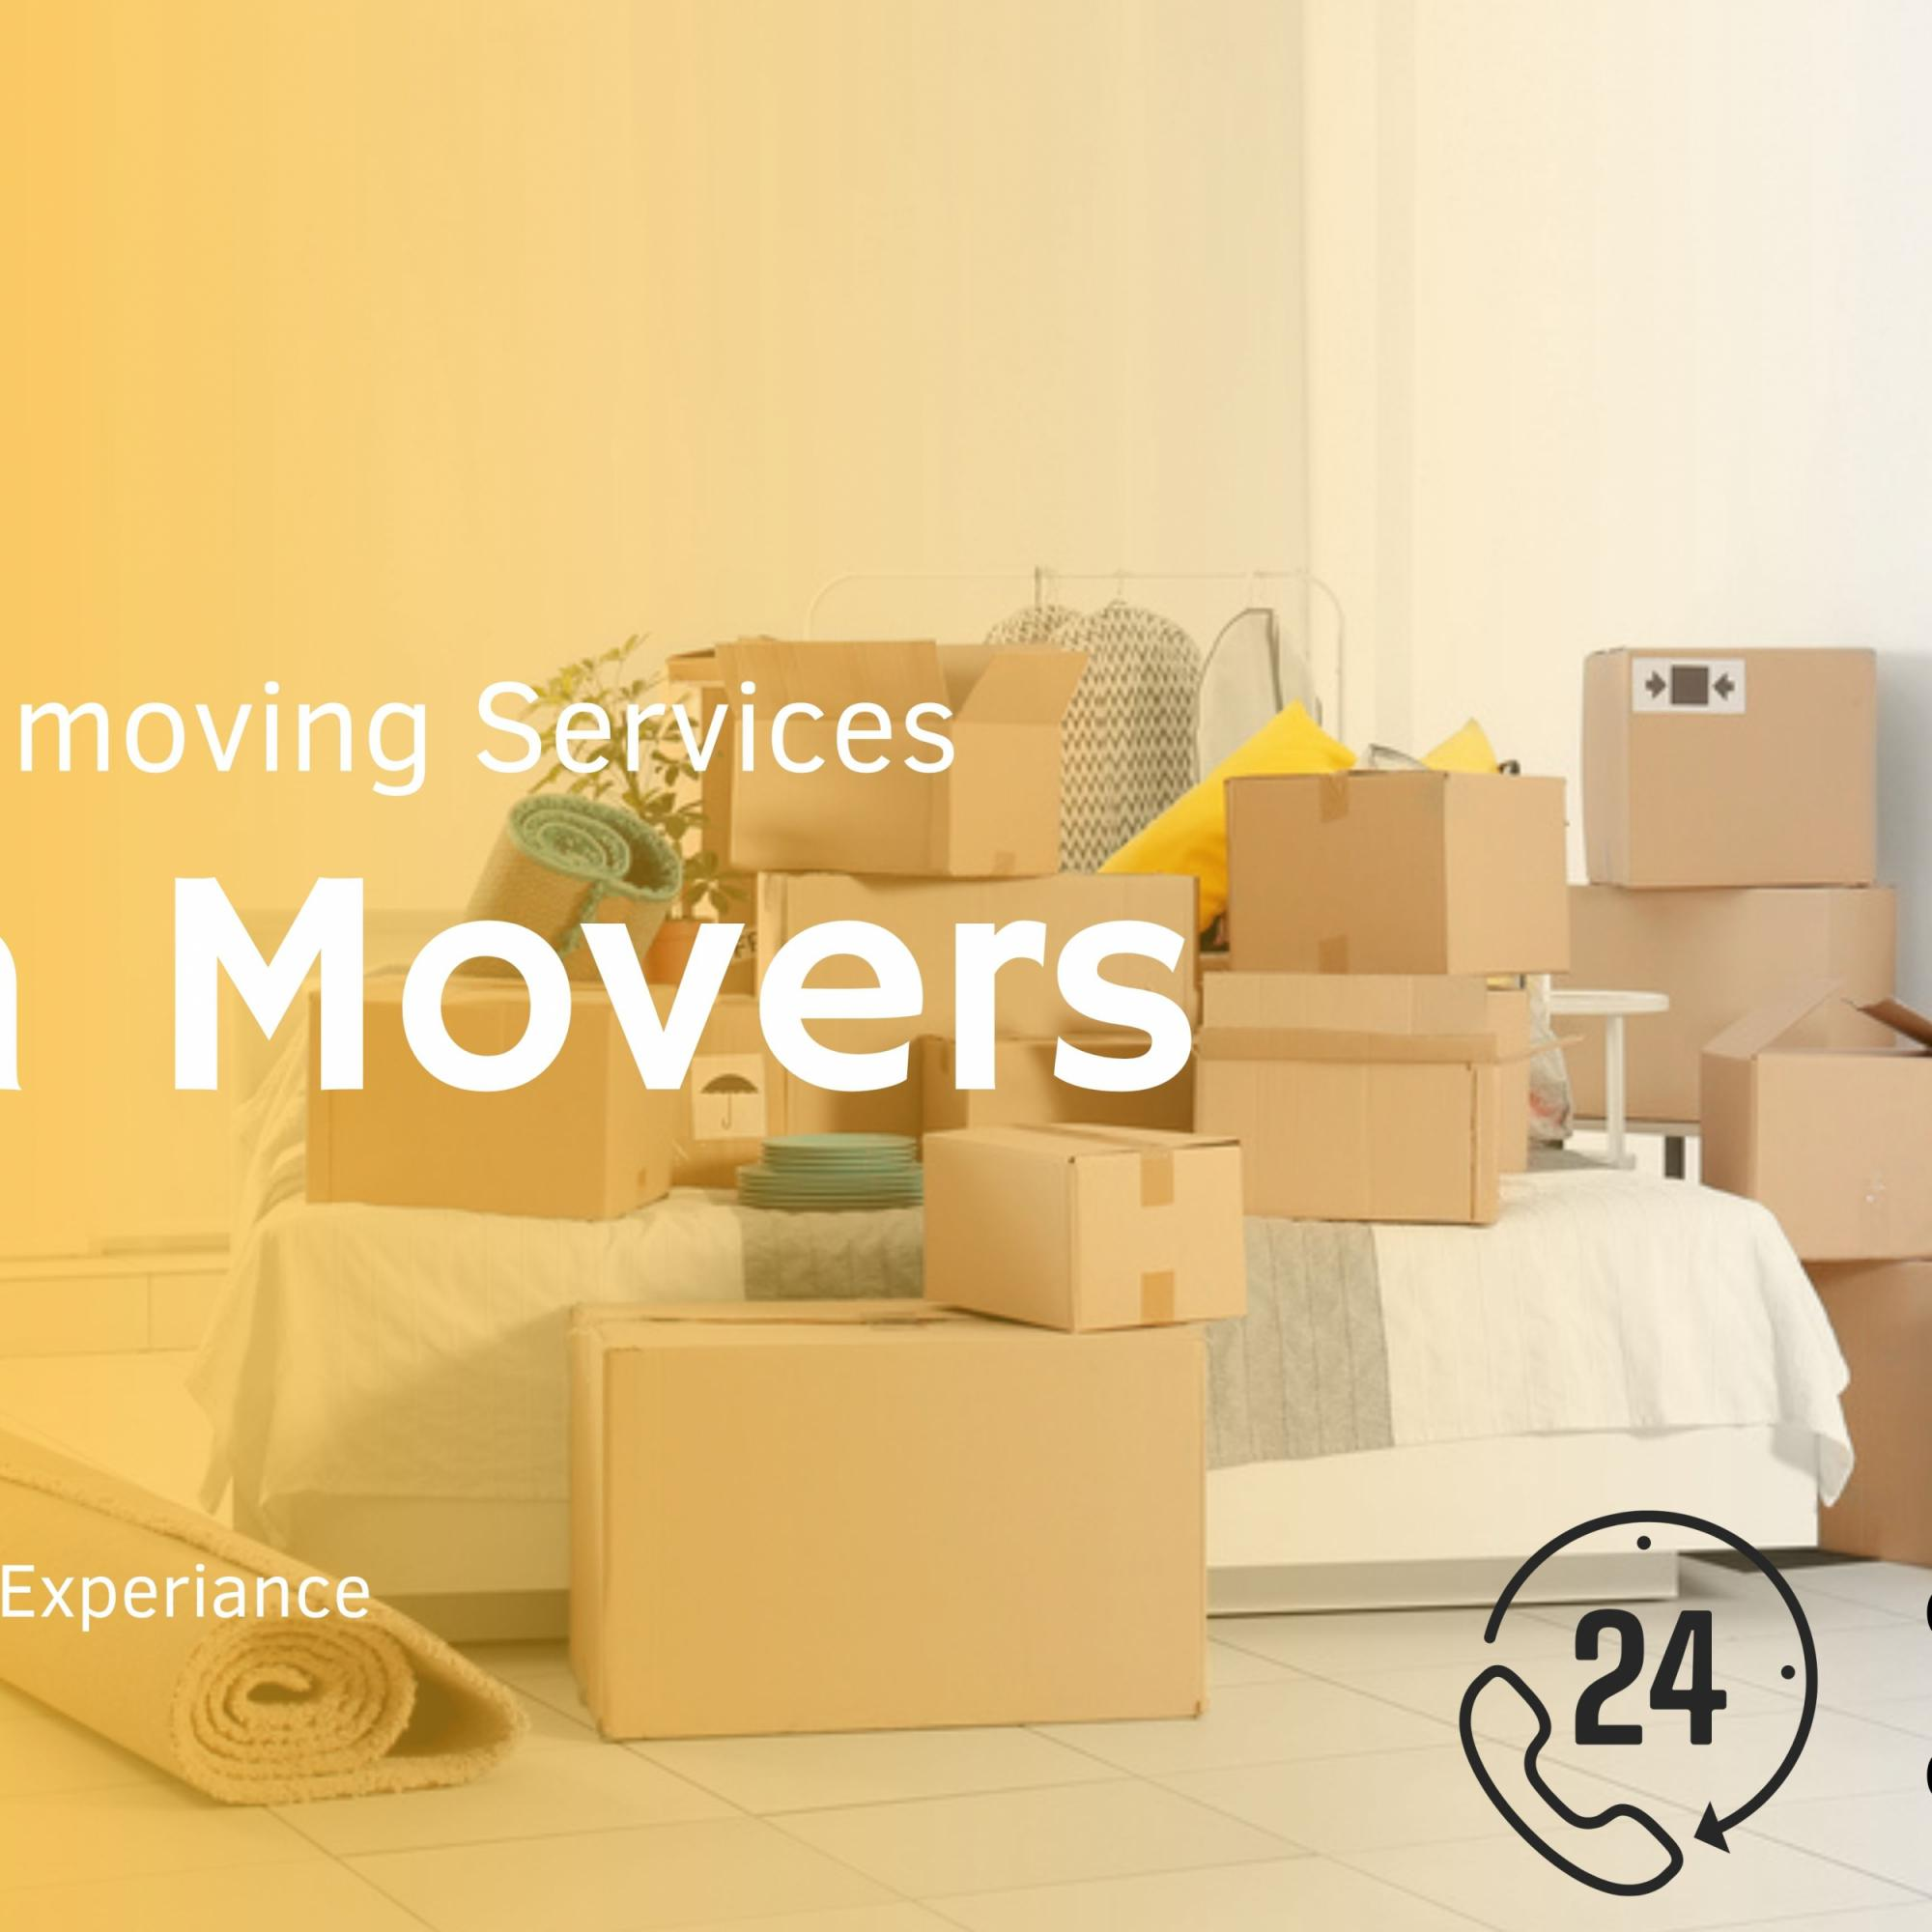 AsianMovers